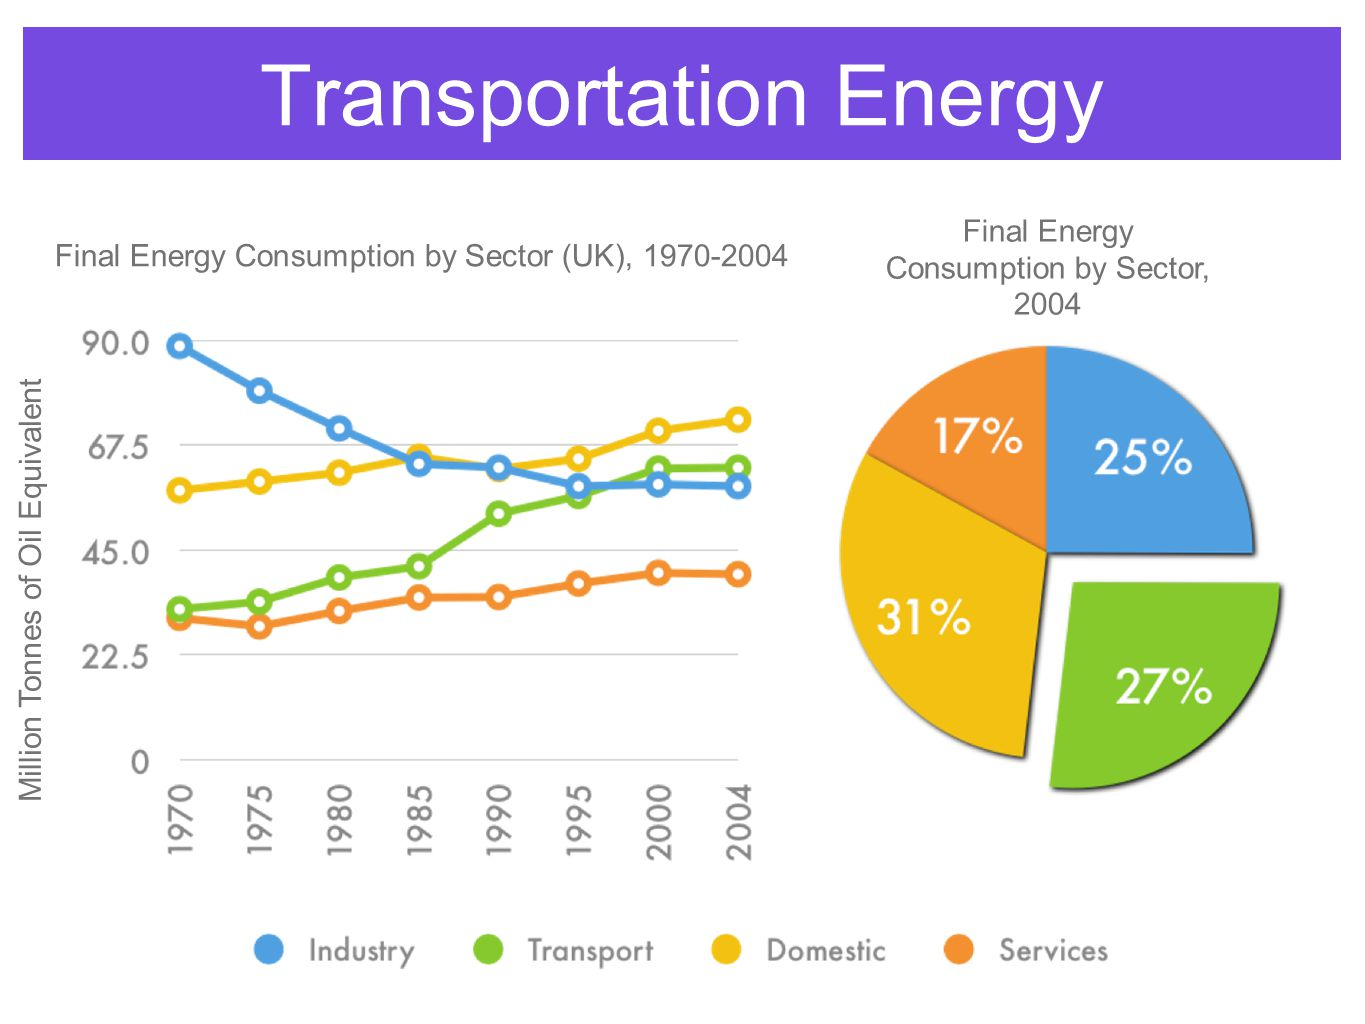 Transportation Energy Million Tonnes of Oil Equivalent Final Energy Consumption by Sector (UK), 1970-2004 Final Energy Consumption by Sector, 2004